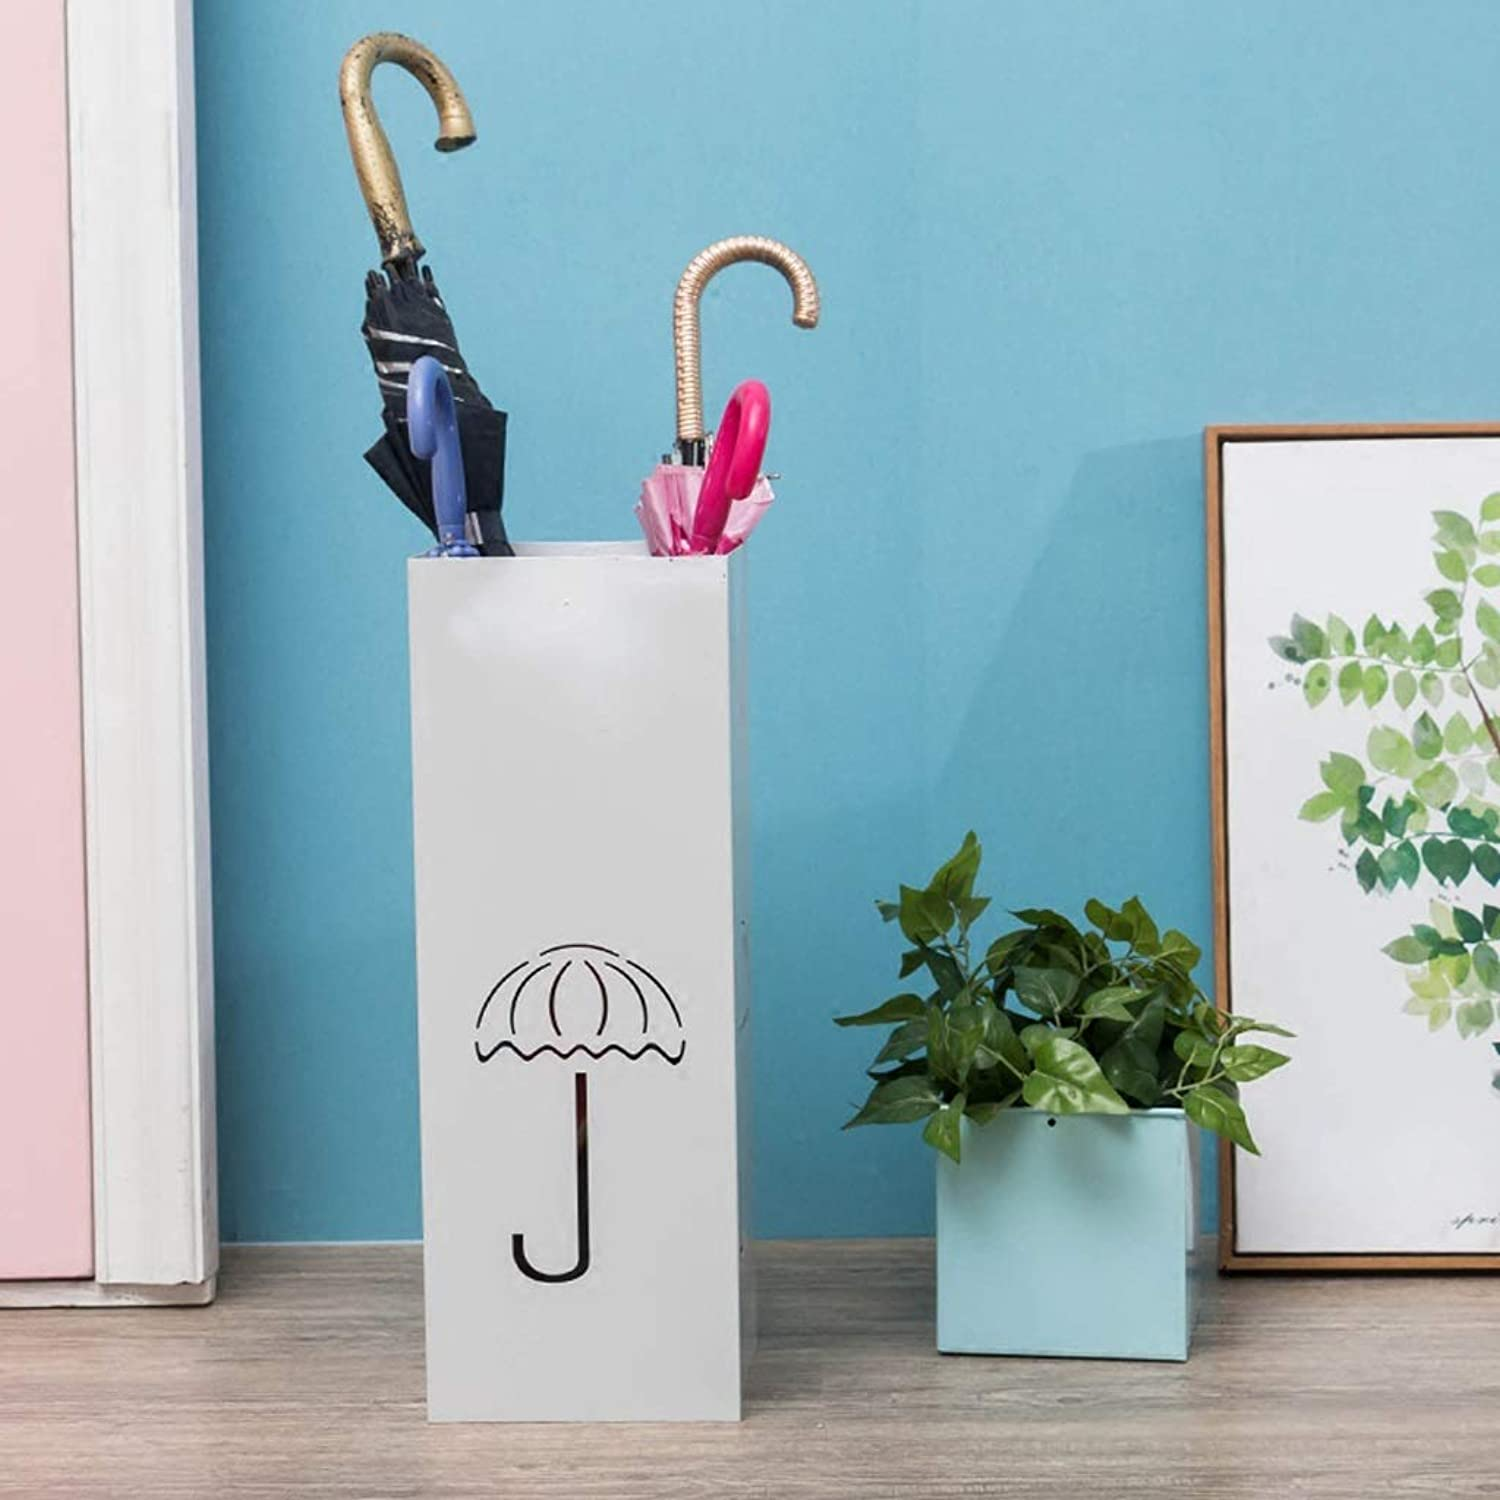 European Metal Umbrella Stand-HJCA Home Creative Umbrella Storage Box Hotel Subway Art Umbrella Stand (Size  7.87x7.87x19.68 Inches) (color   White)